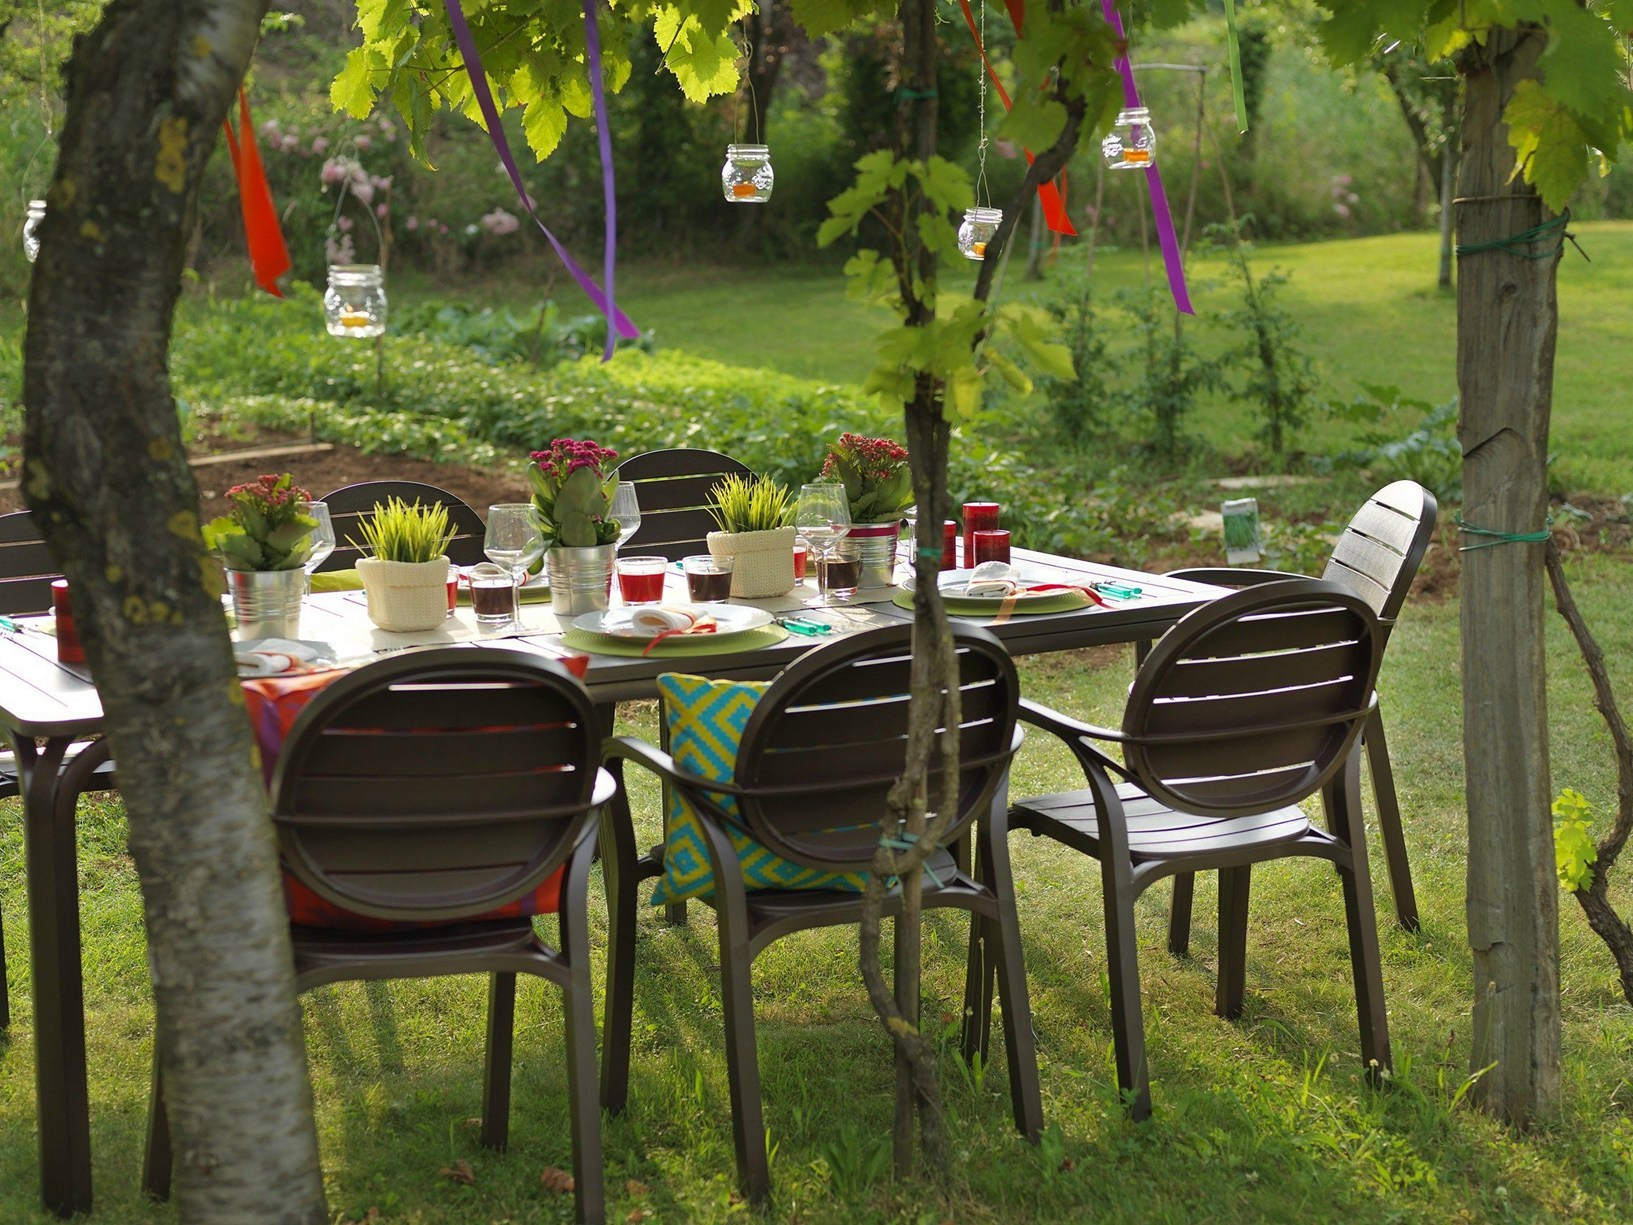 Garden set by nardi in contrasting fashion colors - interior.